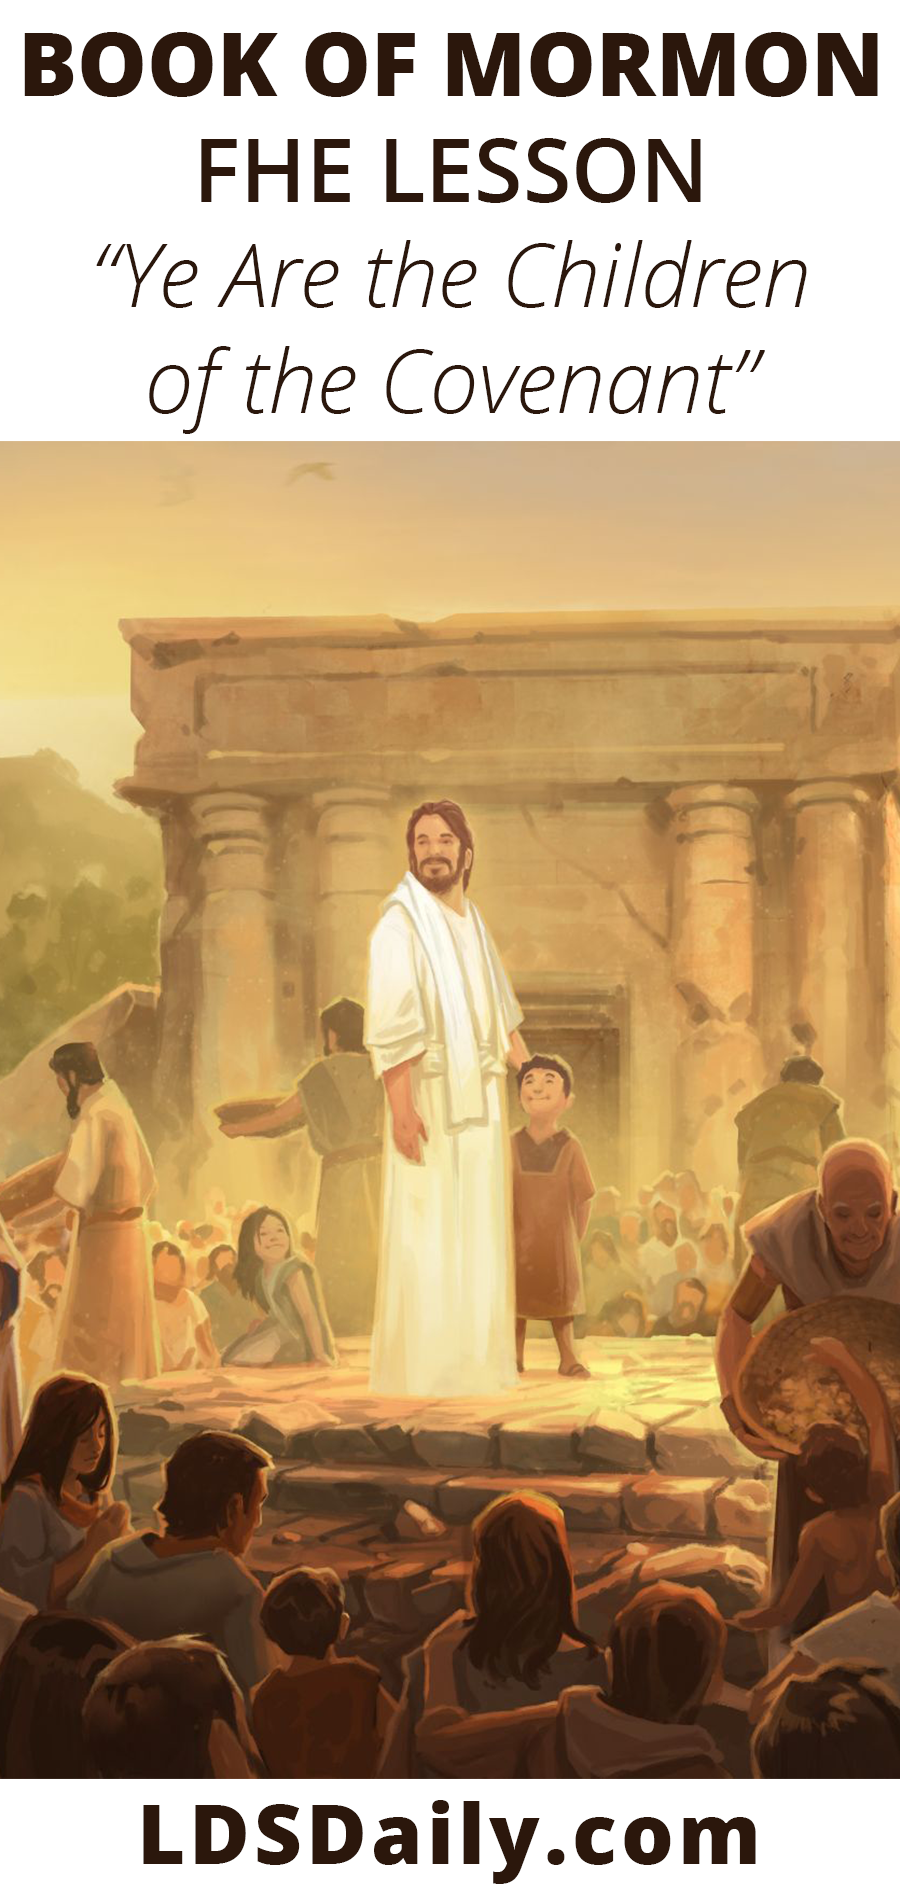 Book of Mormon FHE Lesson - Ye Are the Children of the Covenant